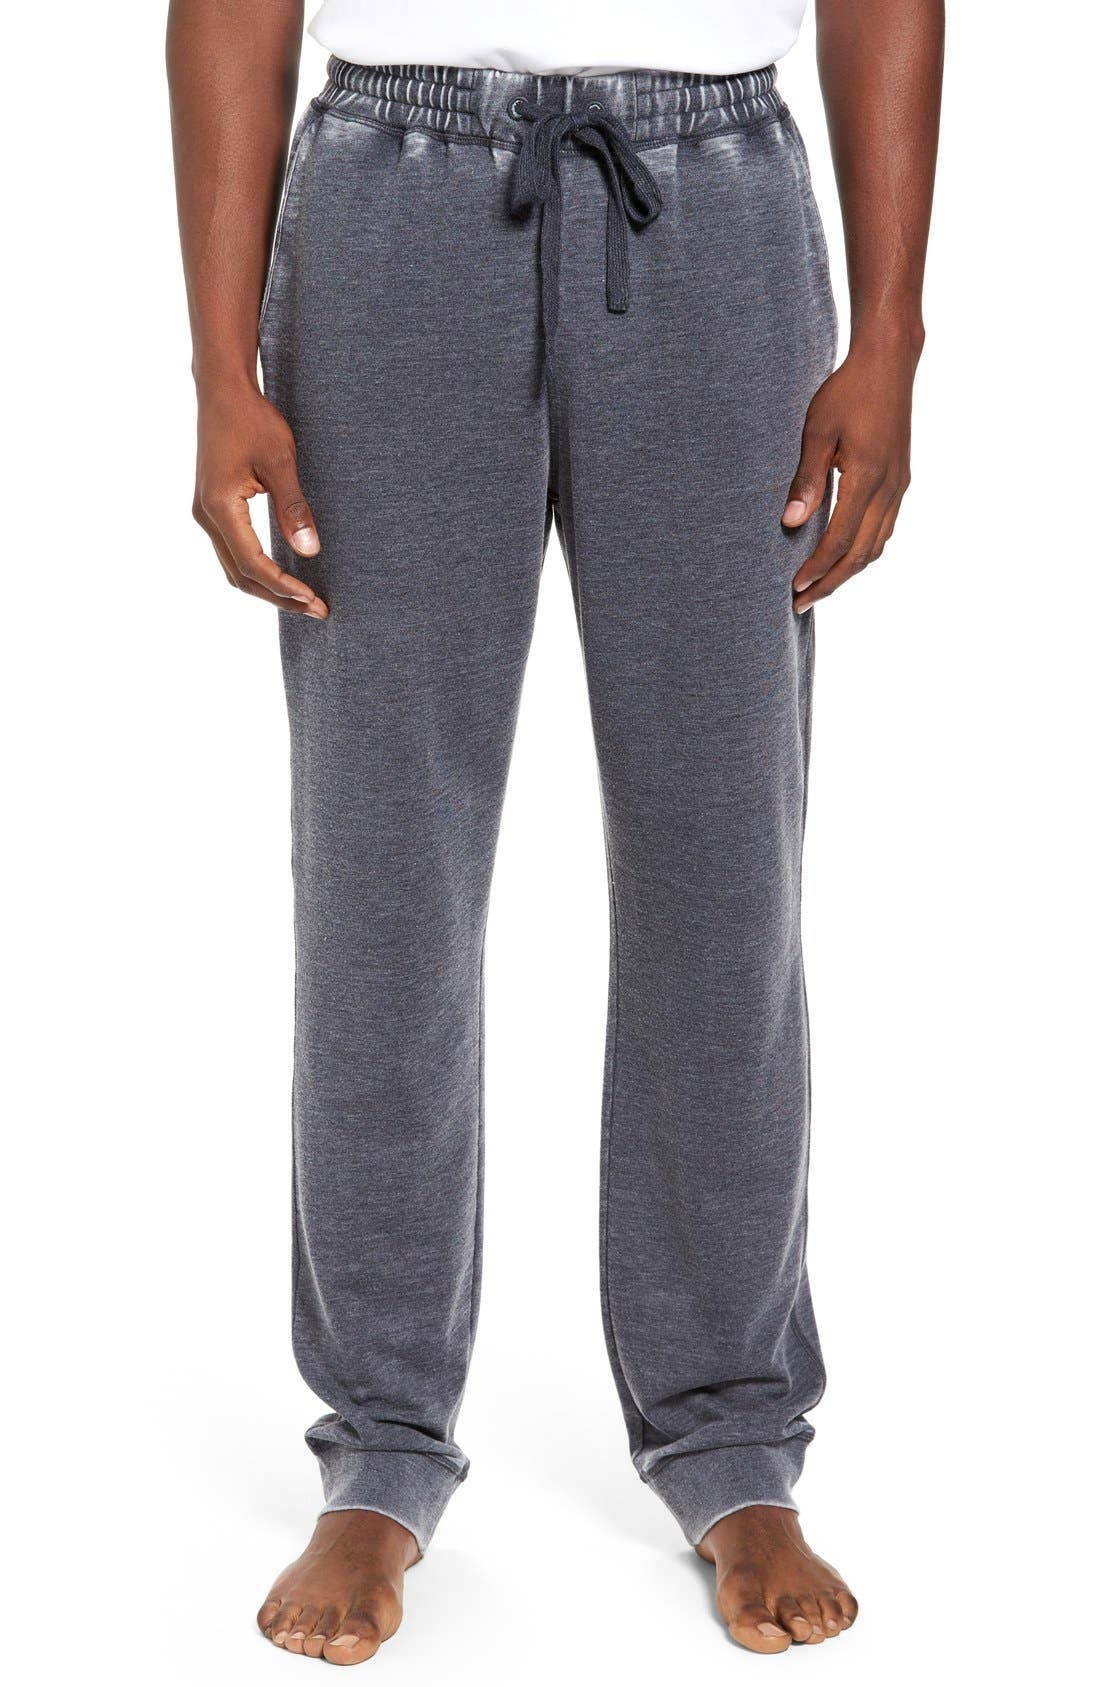 Alternate Image 1 Selected - Daniel Buchler Washed Cotton Blend Terry Lounge Pants